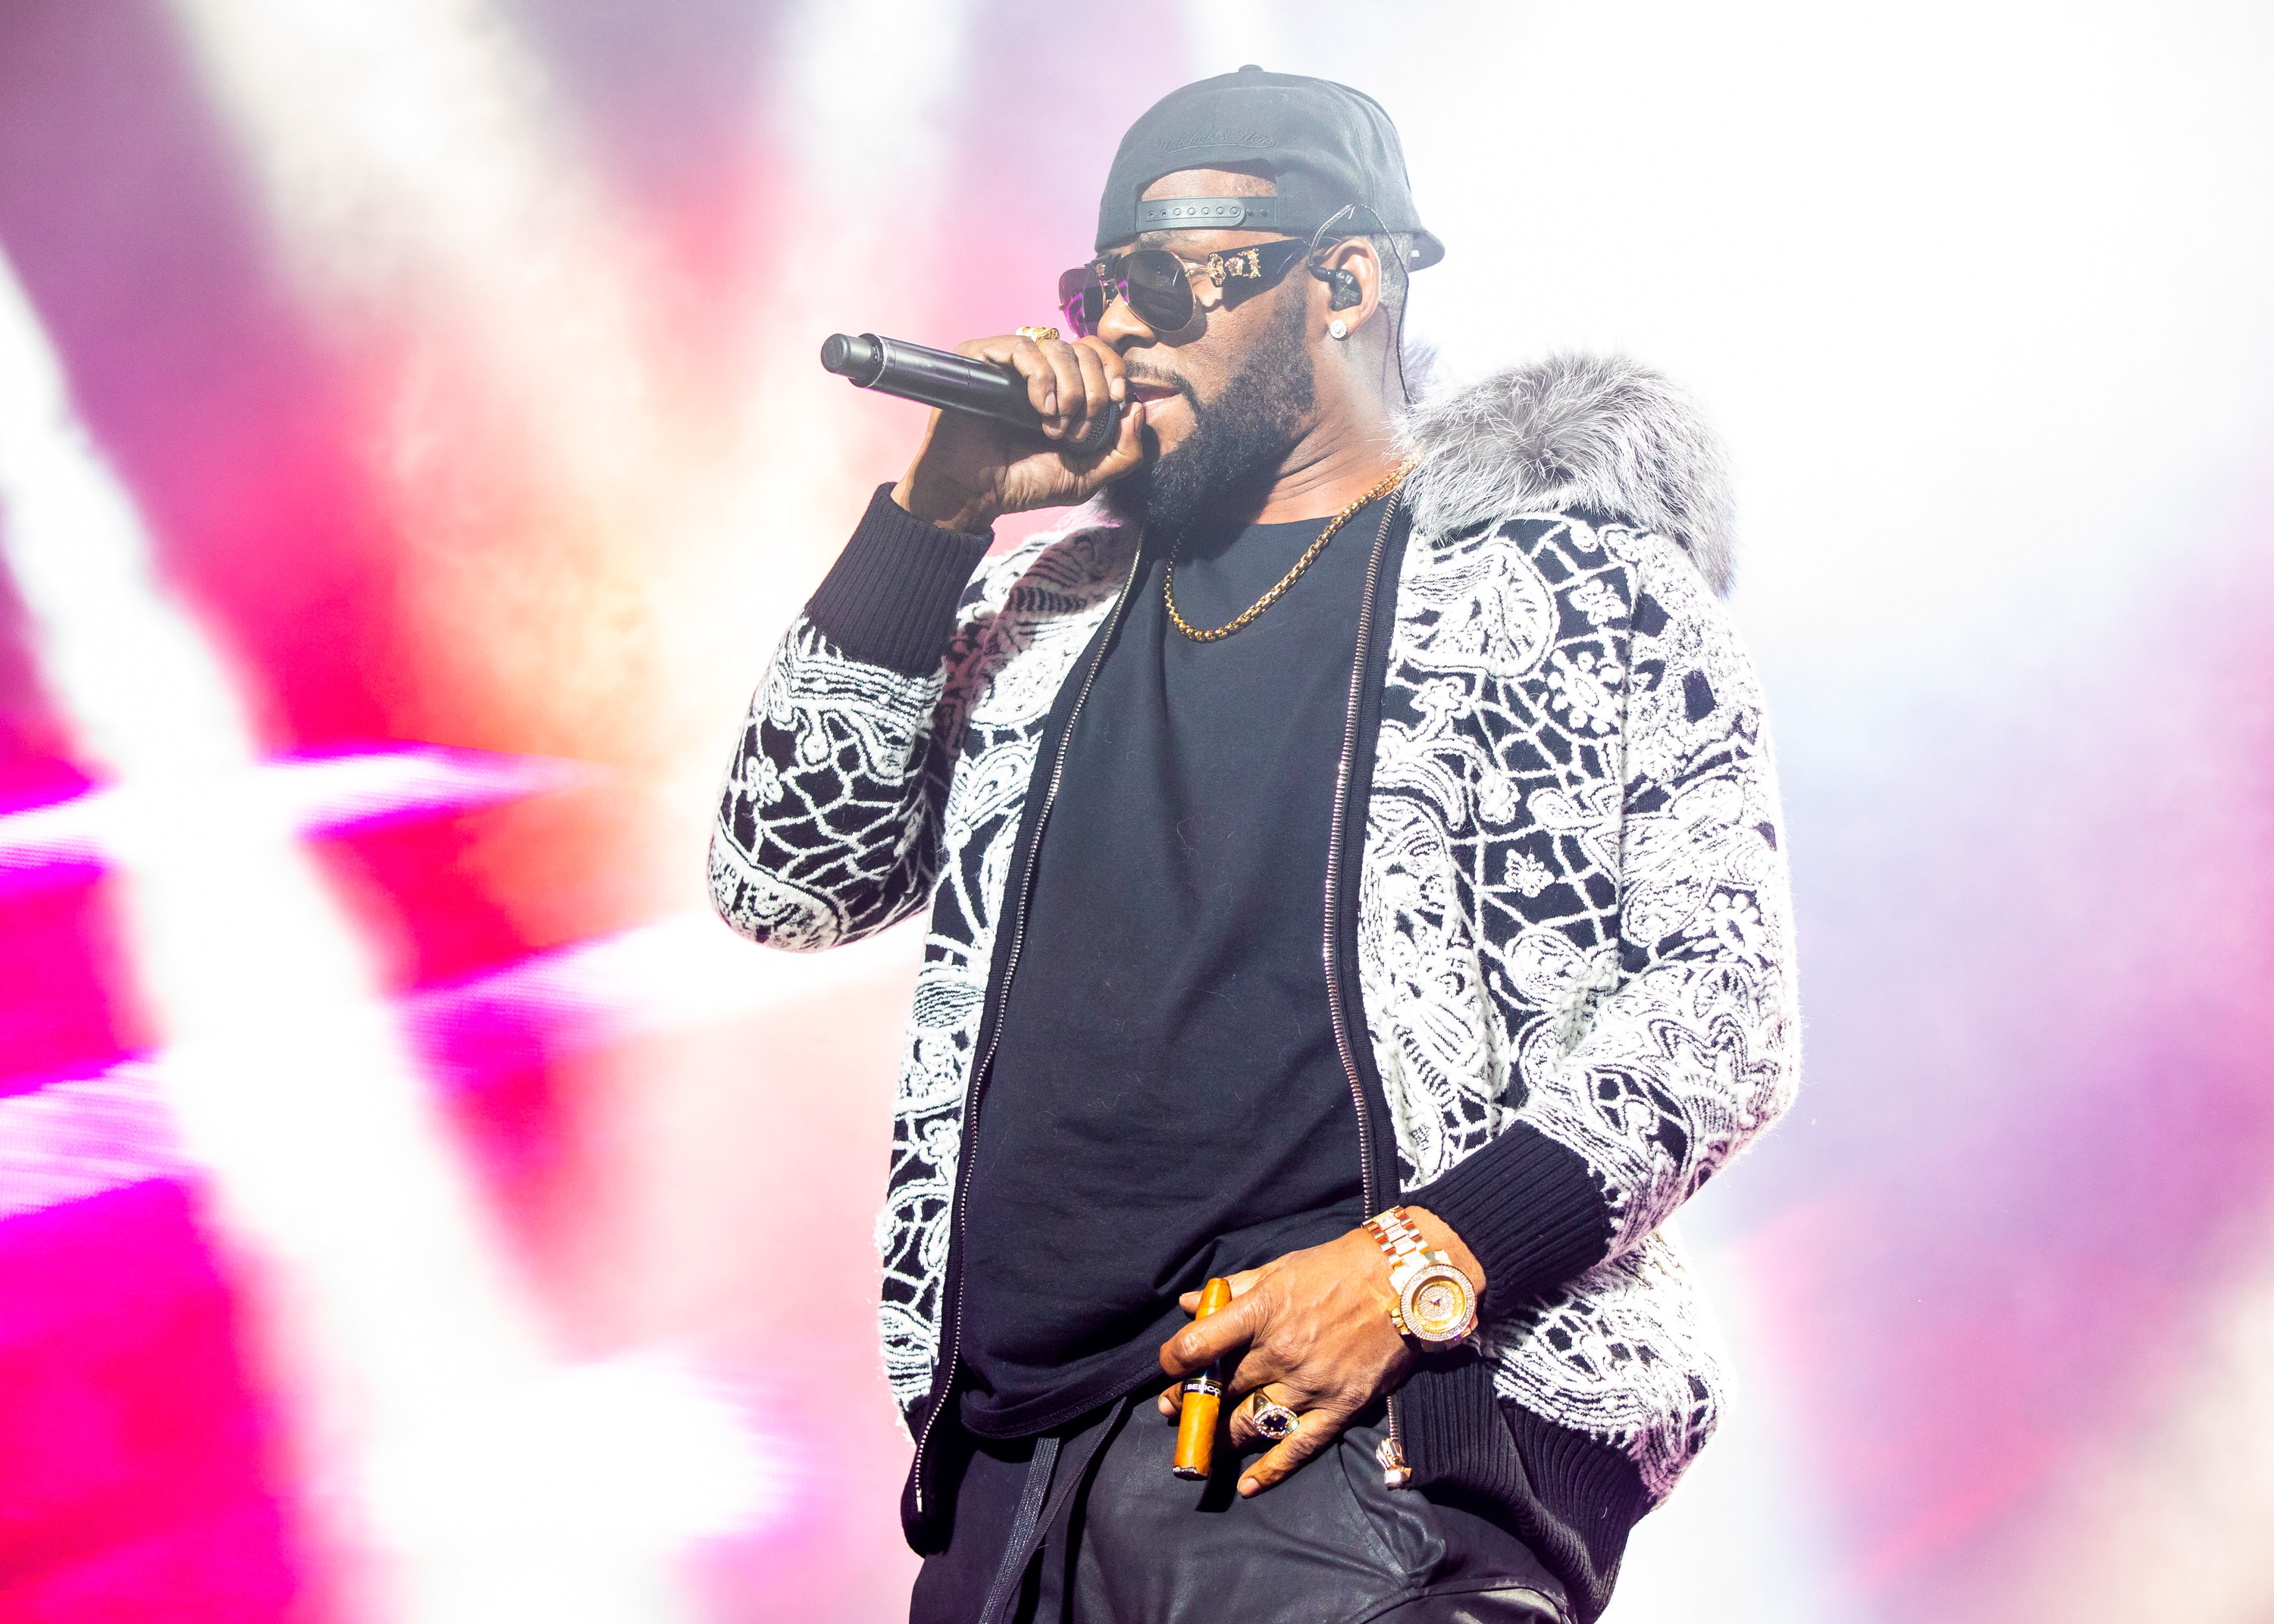 R. Kelly performs at Little Caesars Arena on February 21, 2018 in Detroit, Michigan at Little Caesars Arena on February 21, 2018 in Detroit, Michigan.